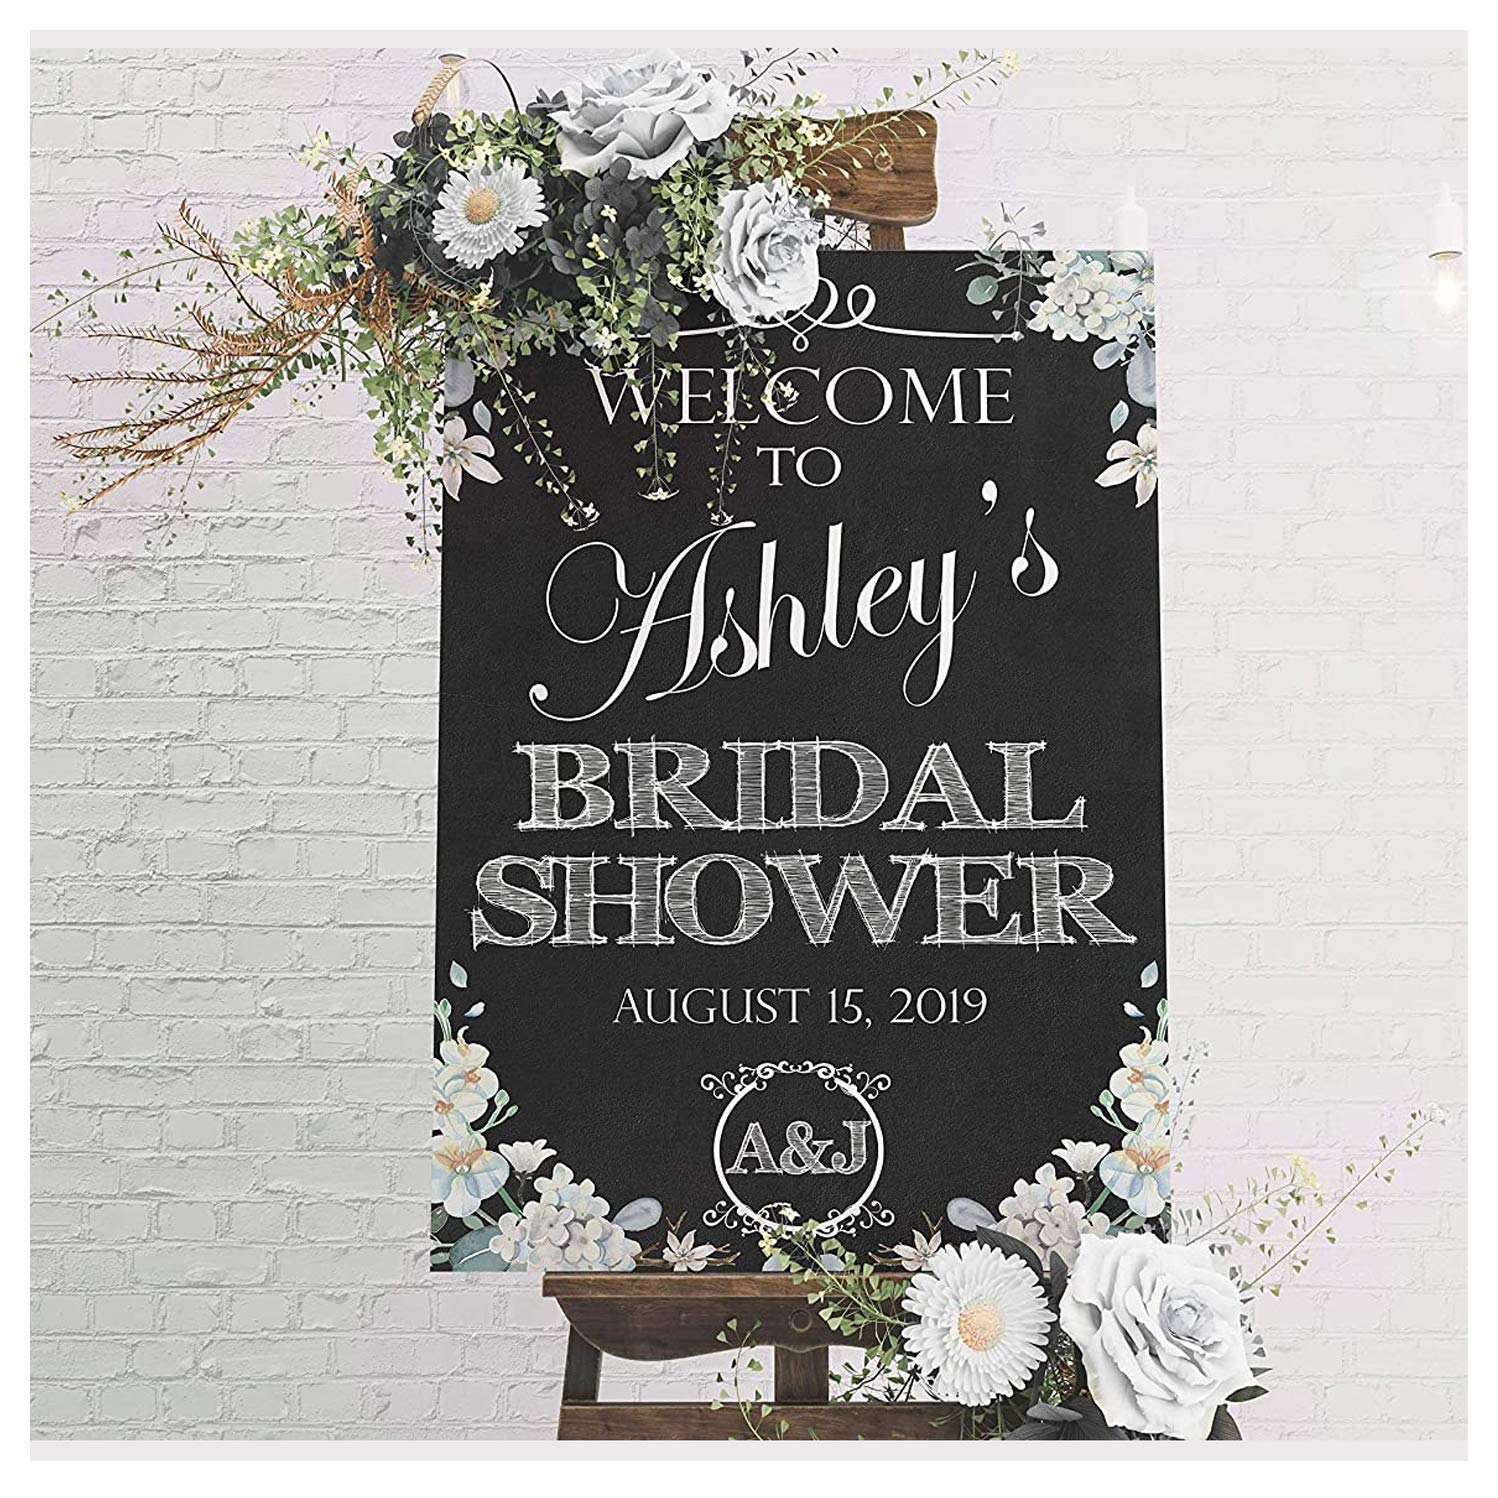 Floral Bridal Shower Chalkboard Sign, Floral Decor Welcome Sign, Black and White Theme, Wedding Shower Gifts, Bridal Shower Signs, Bachelorette Party, Party Supply Poster Size 24x18, 36x24 and 48x36